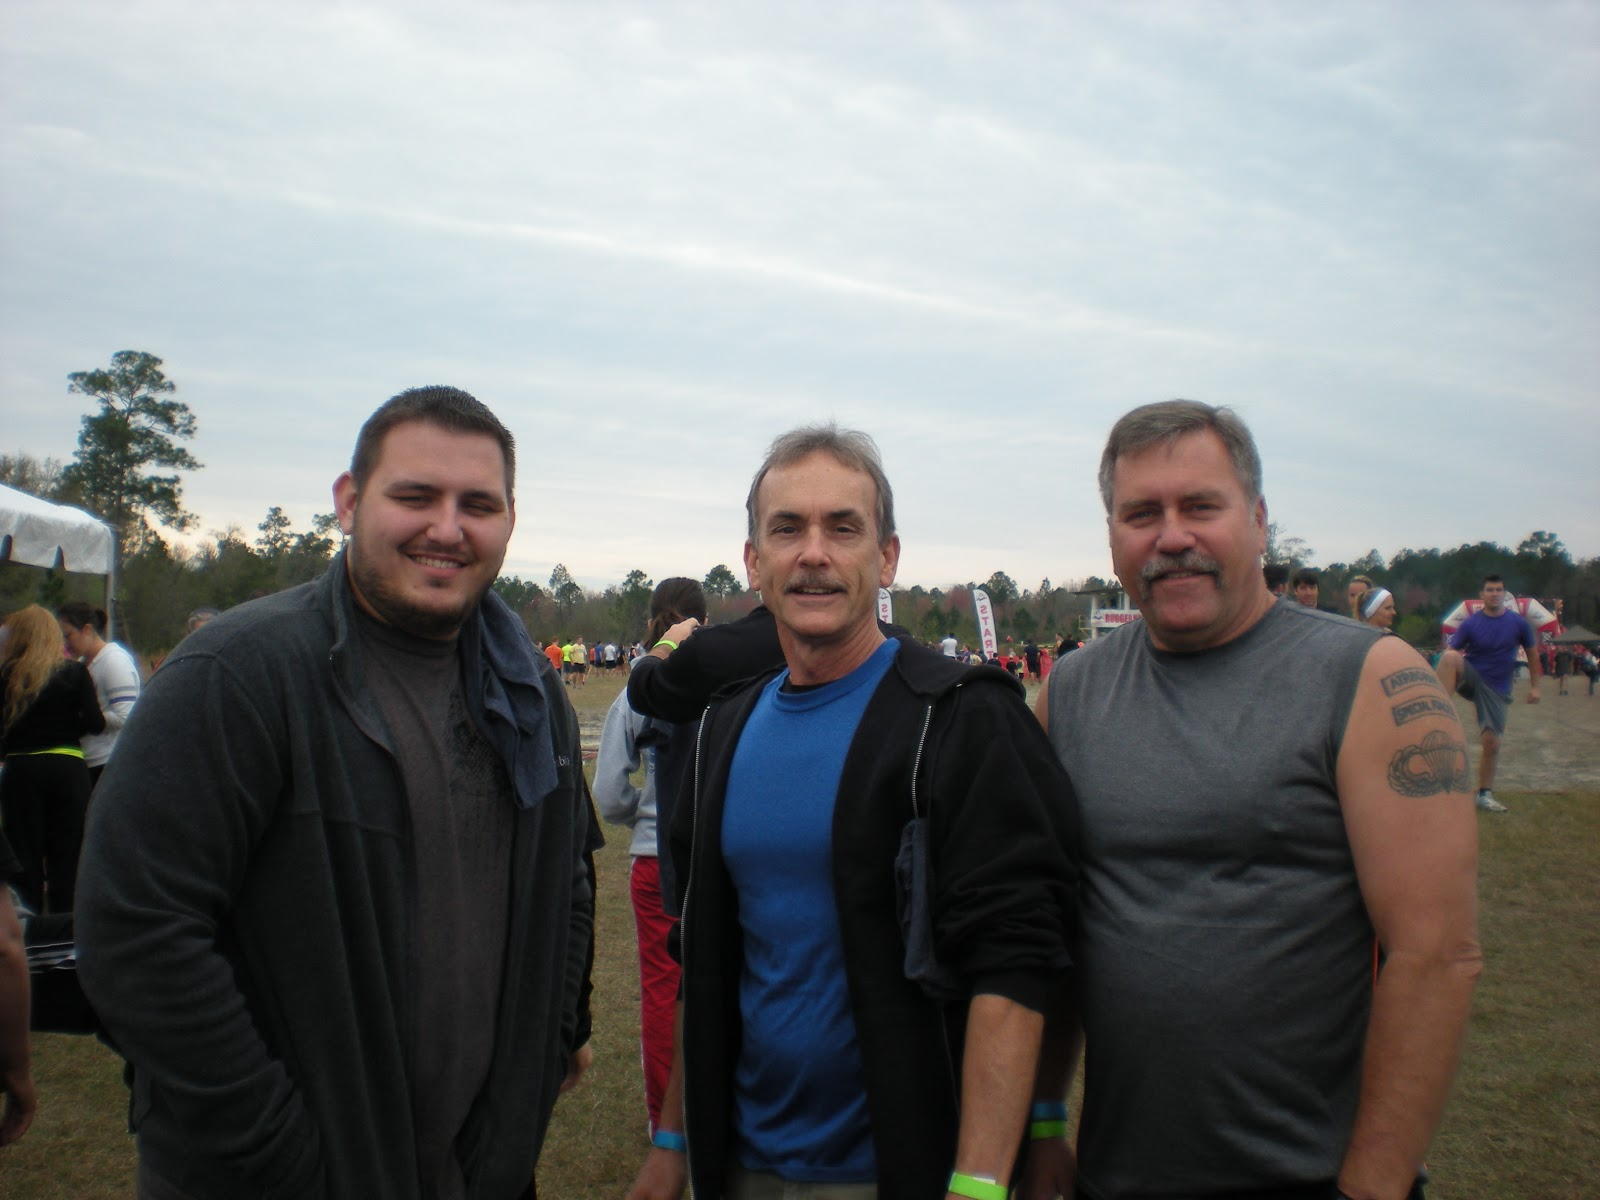 Stuart, Me, And My Cousin Rick (Stuartu0027s Dad) This Is How We Looked Before  The Mud.